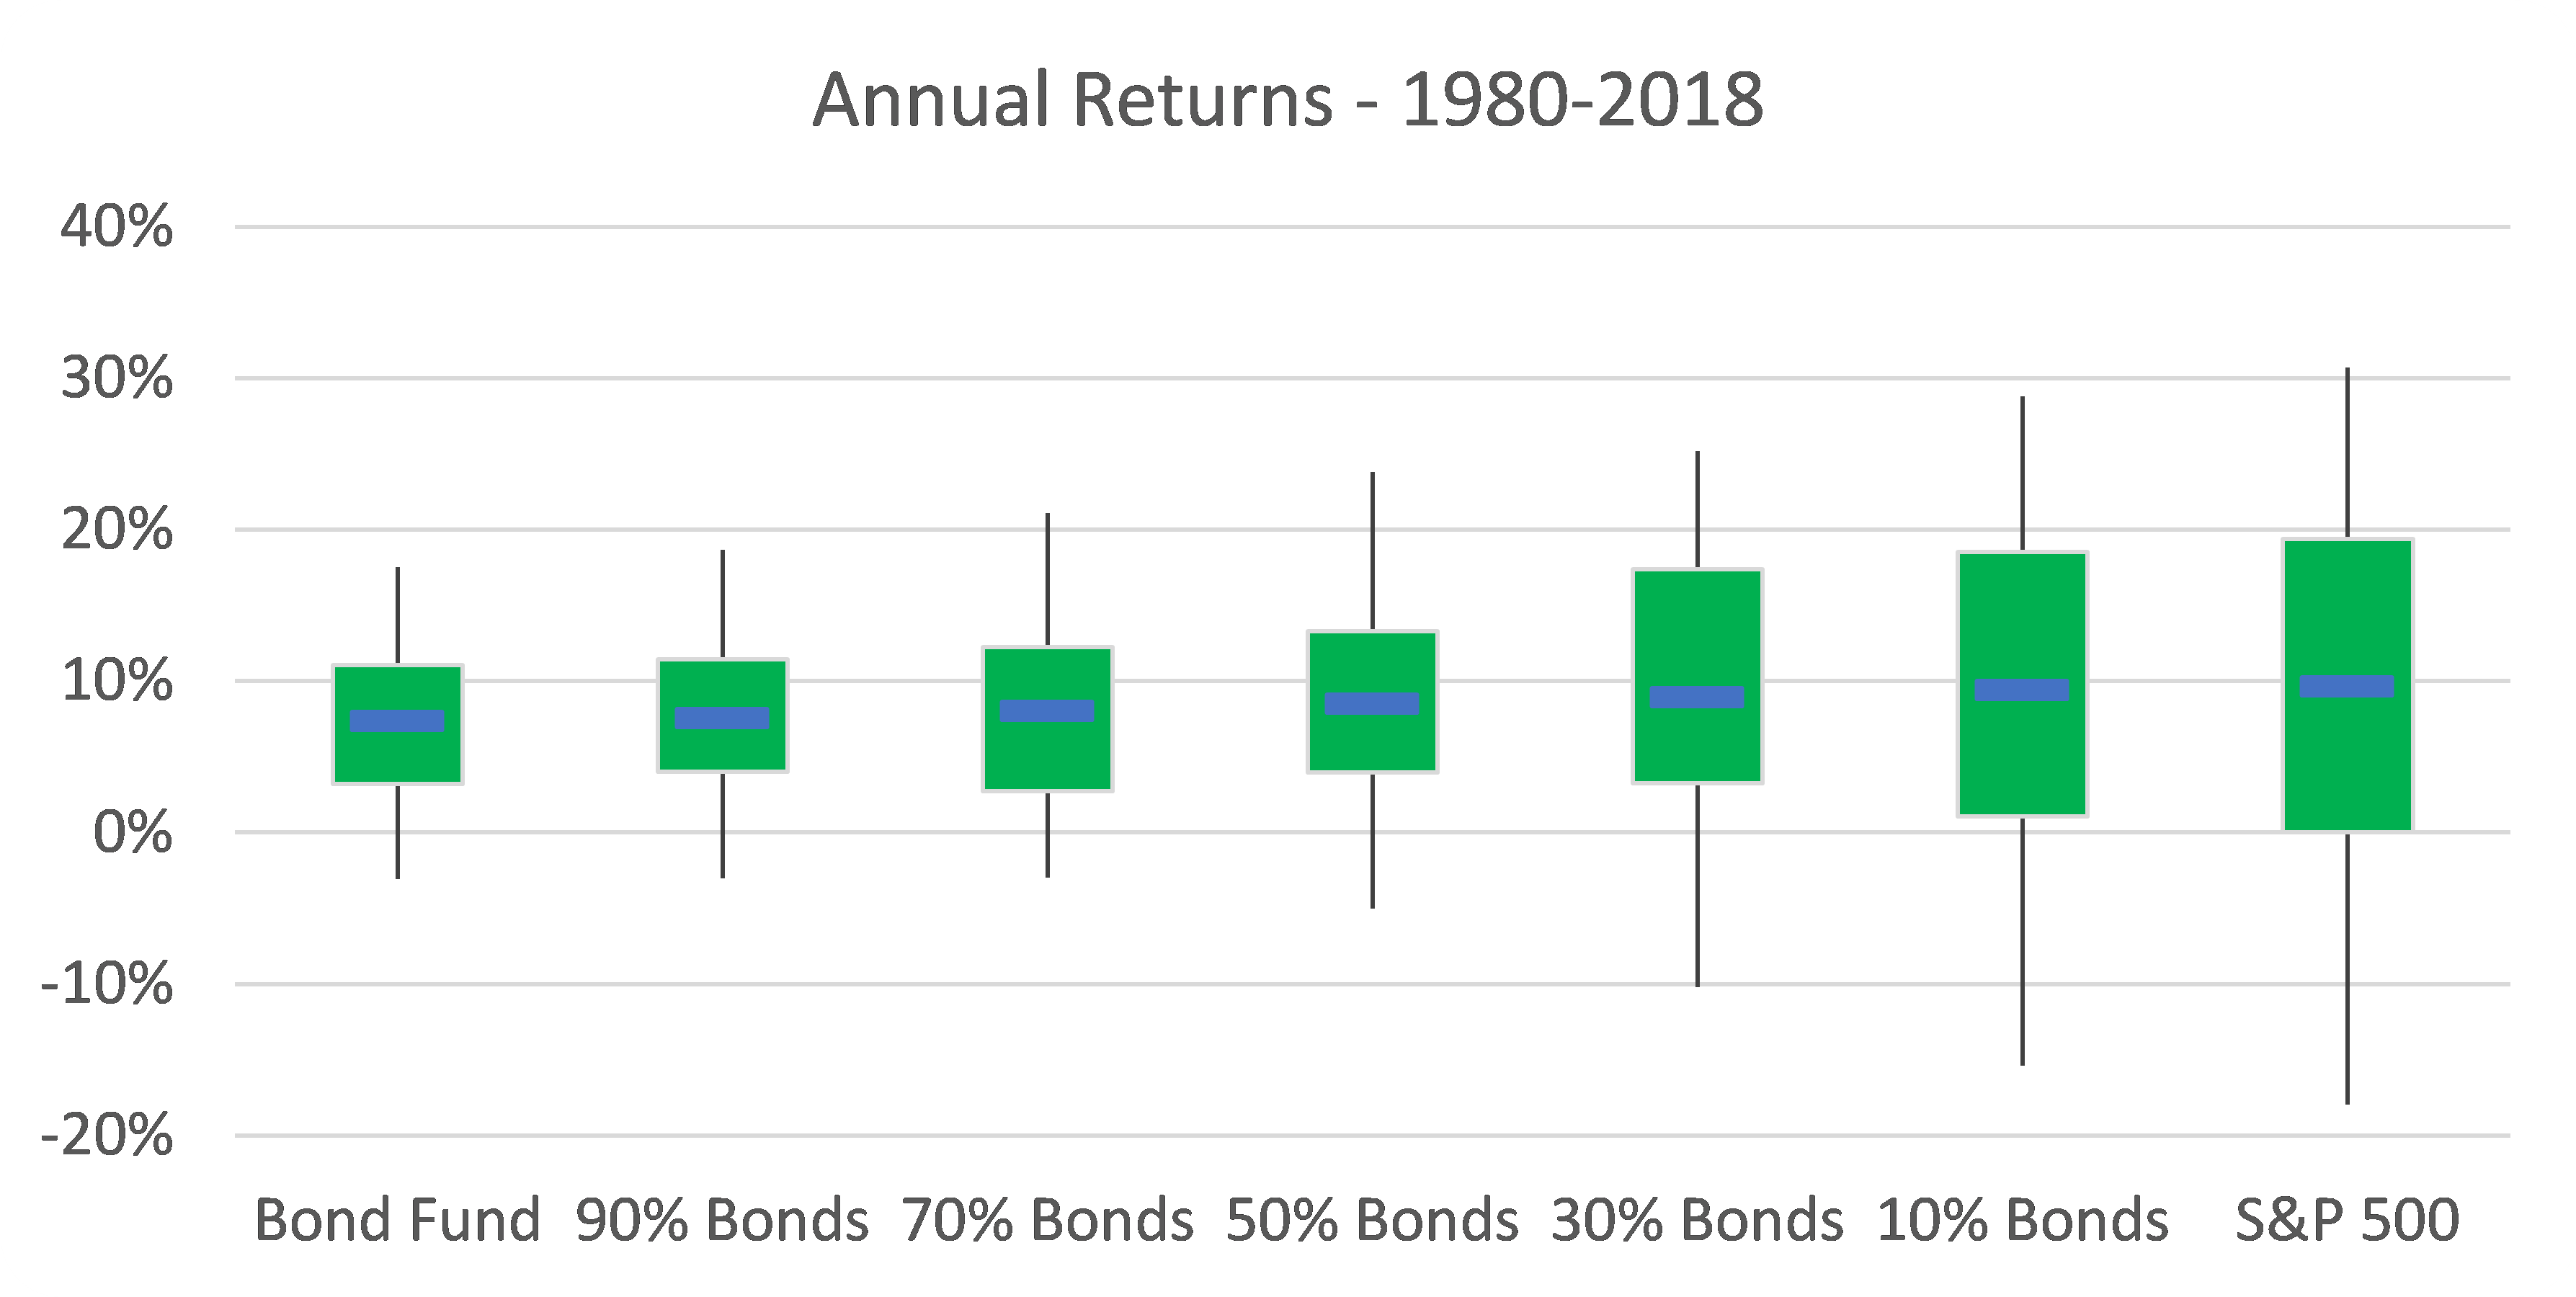 Annual returns on stock/bond portfolios from 1980 to 2018